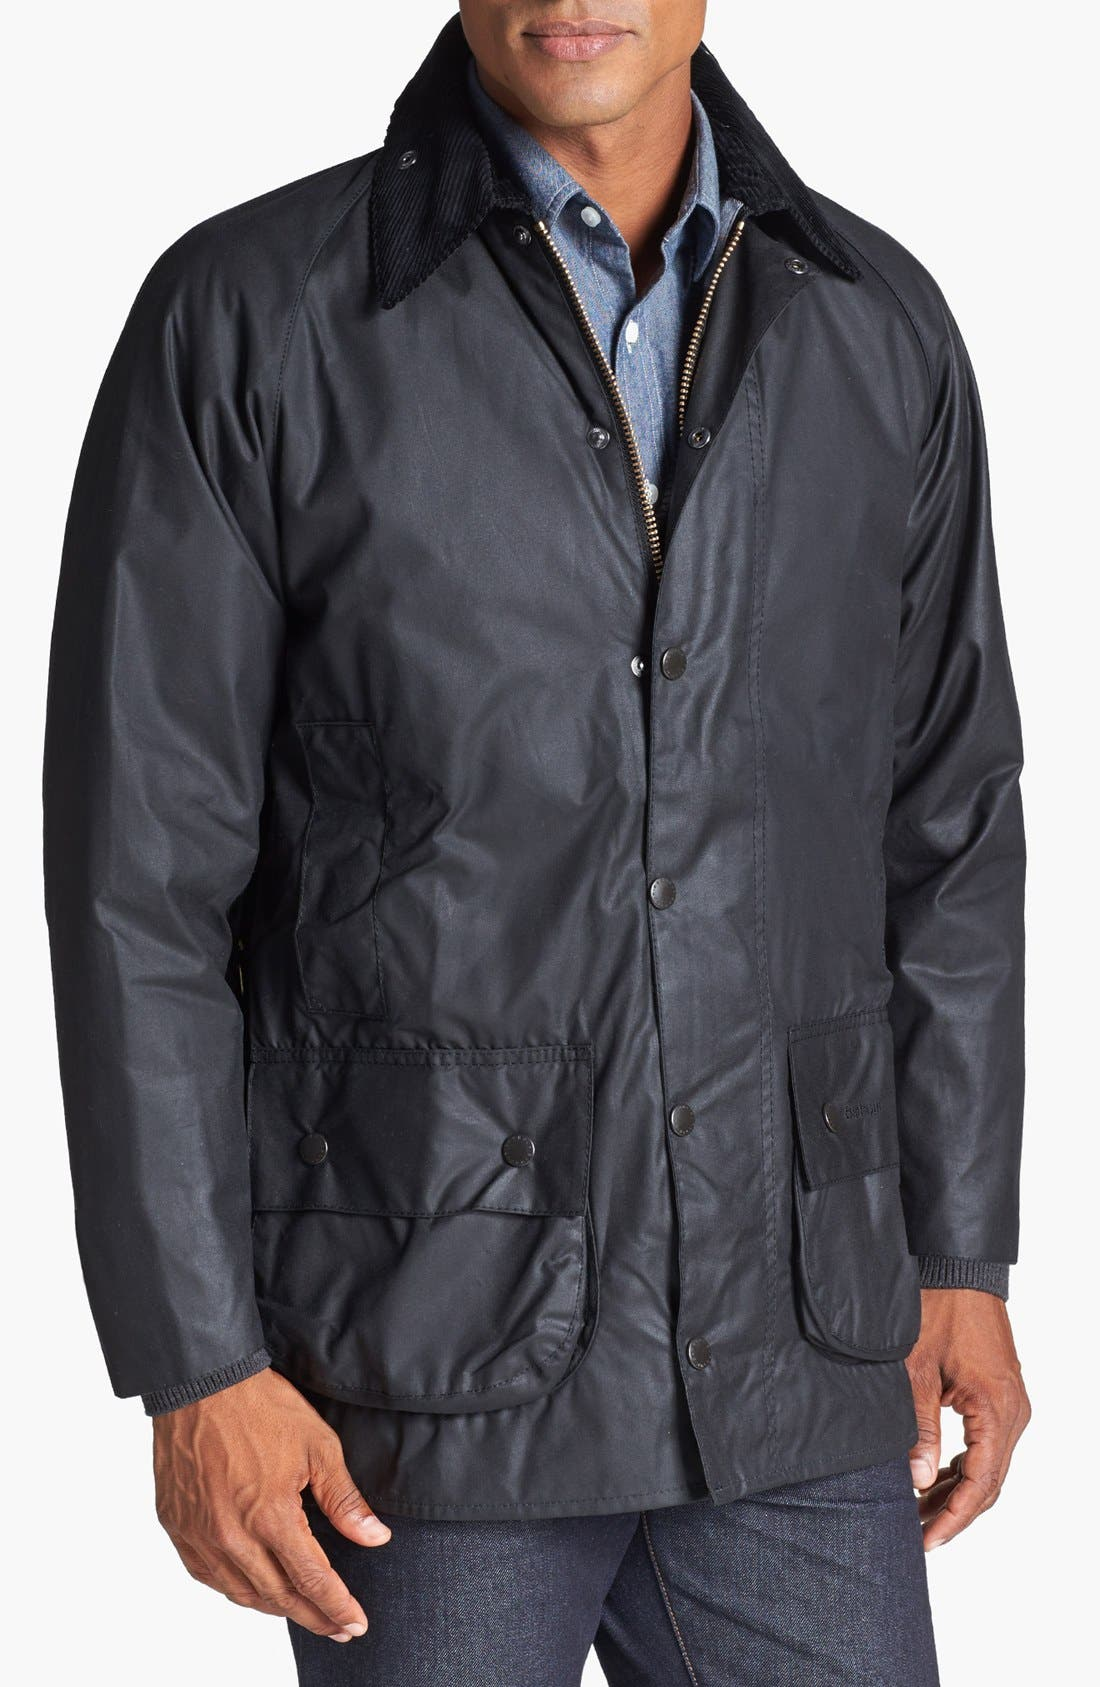 Main Image - Barbour 'Beaufort' Regular Fit Weatherproof Waxed Jacket